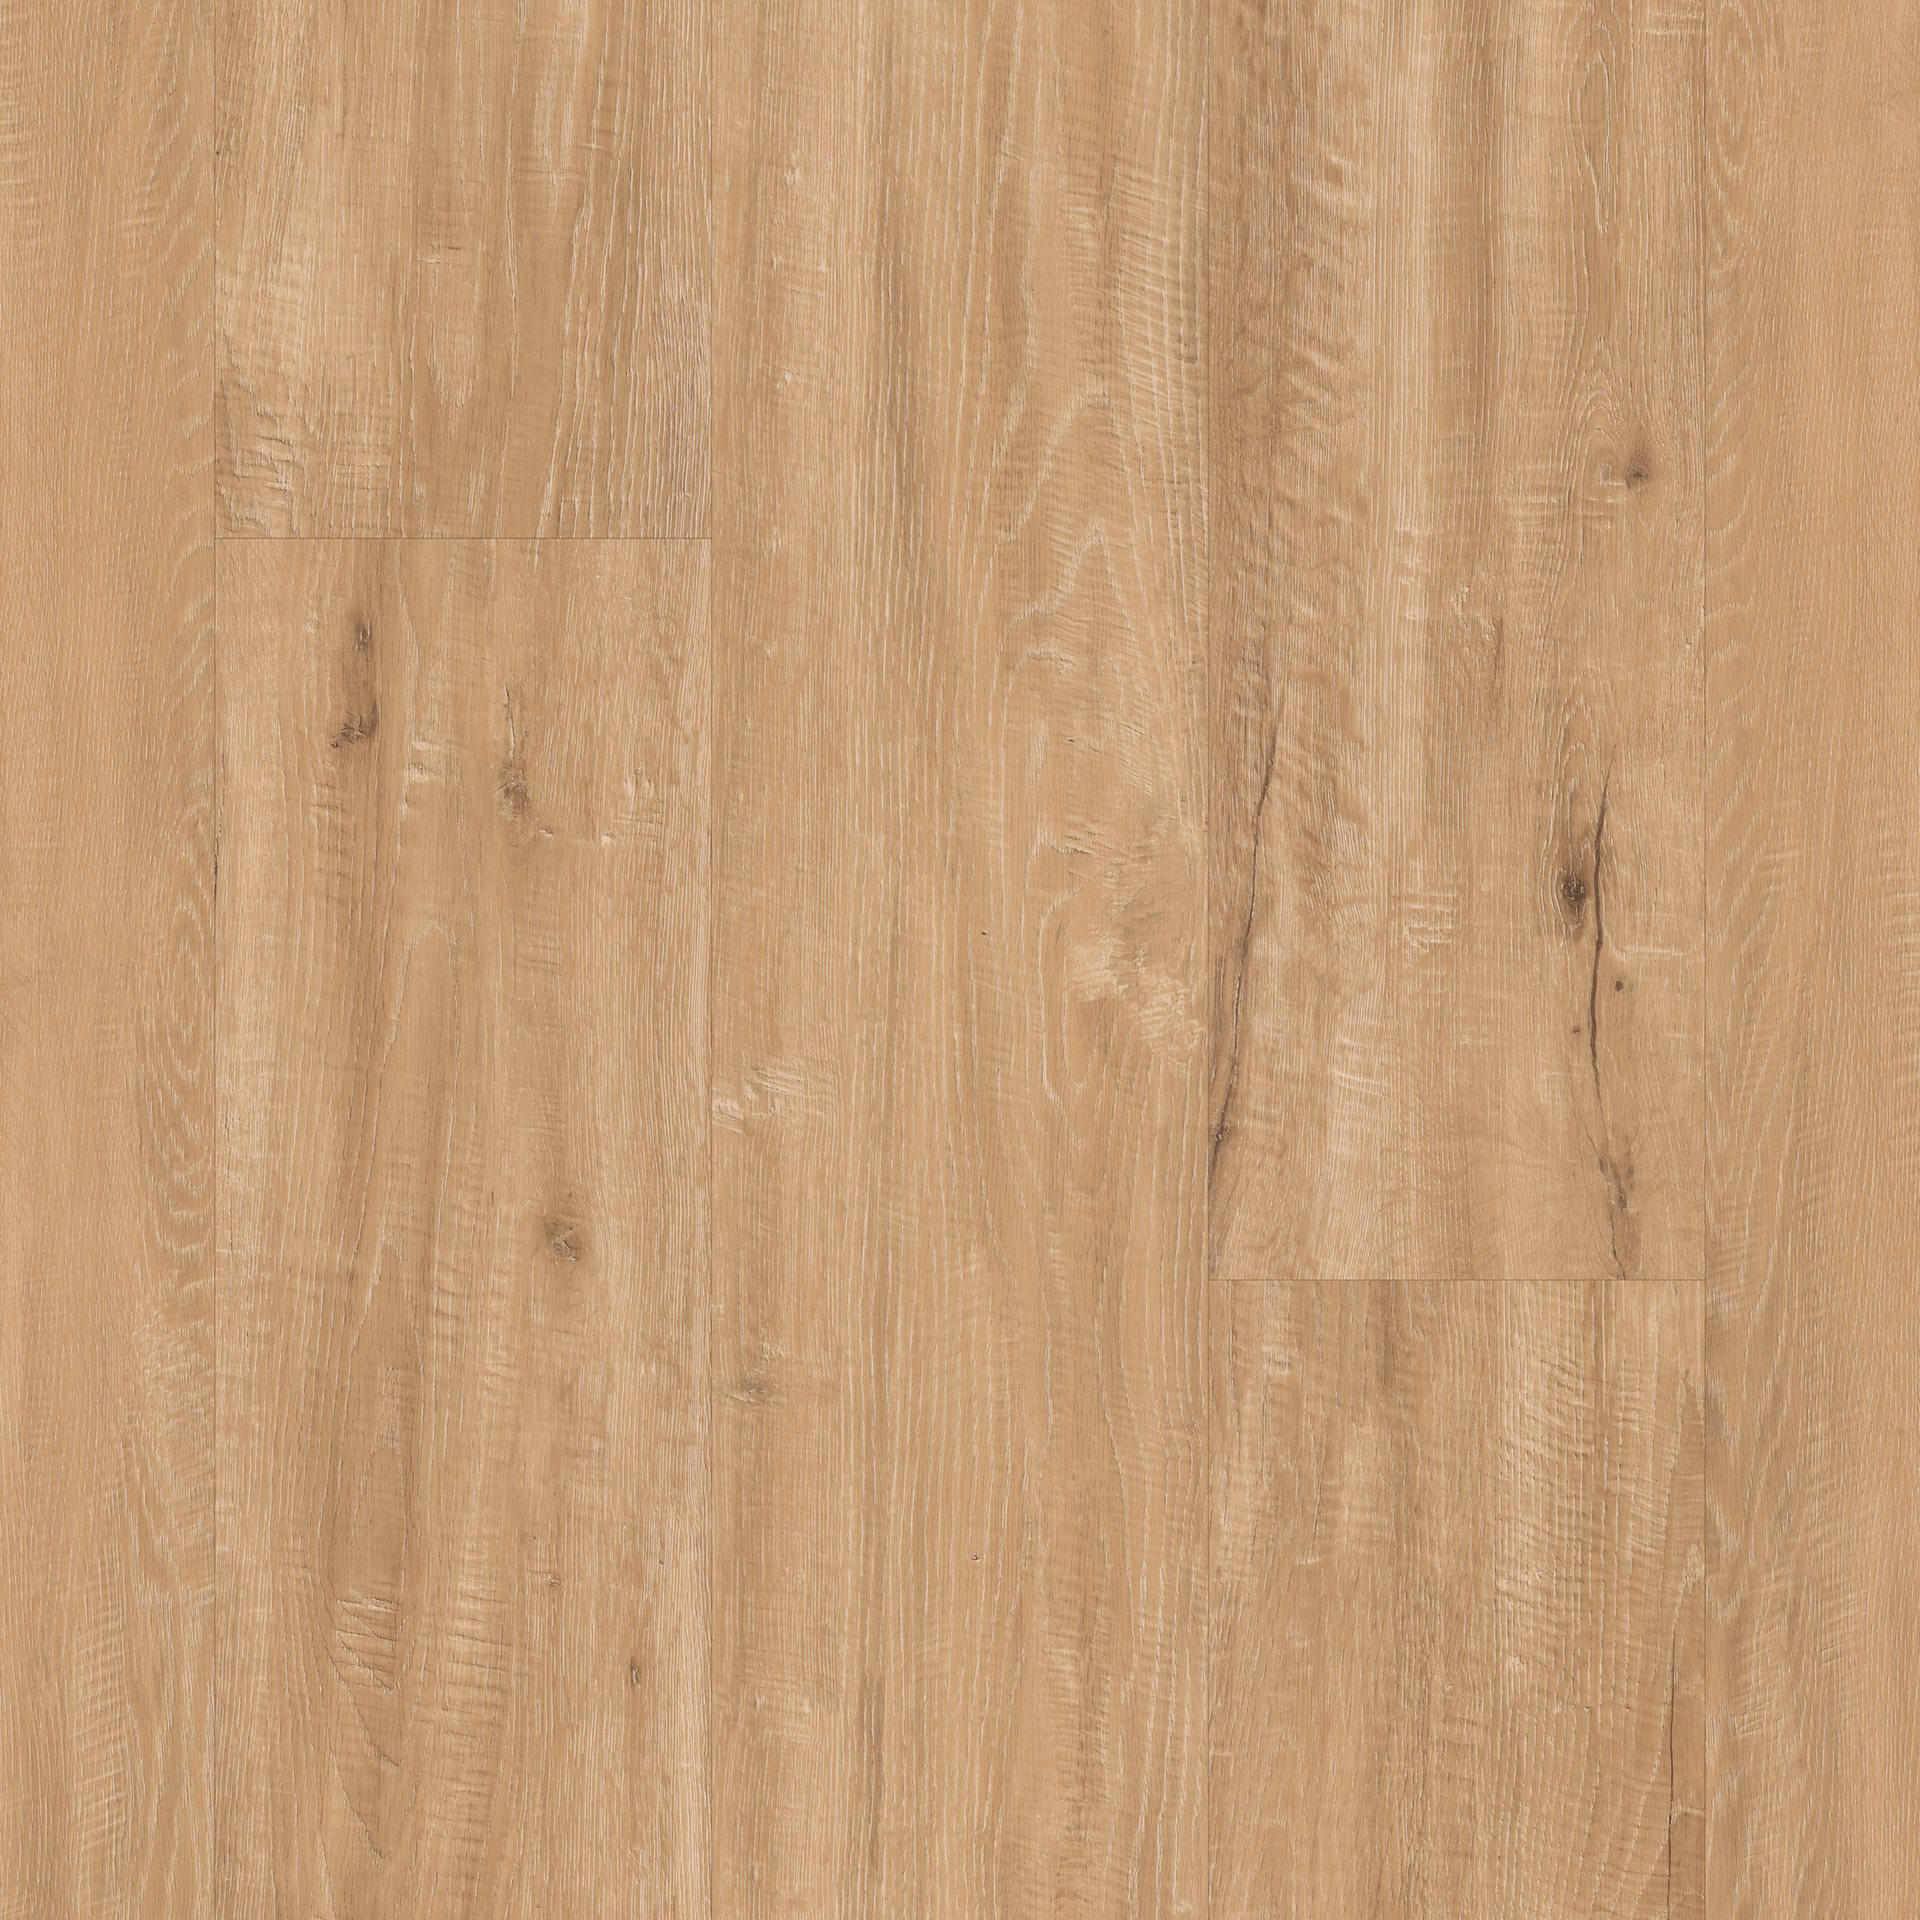 karndean looselay longboard champagne oak vinyl plank. Black Bedroom Furniture Sets. Home Design Ideas